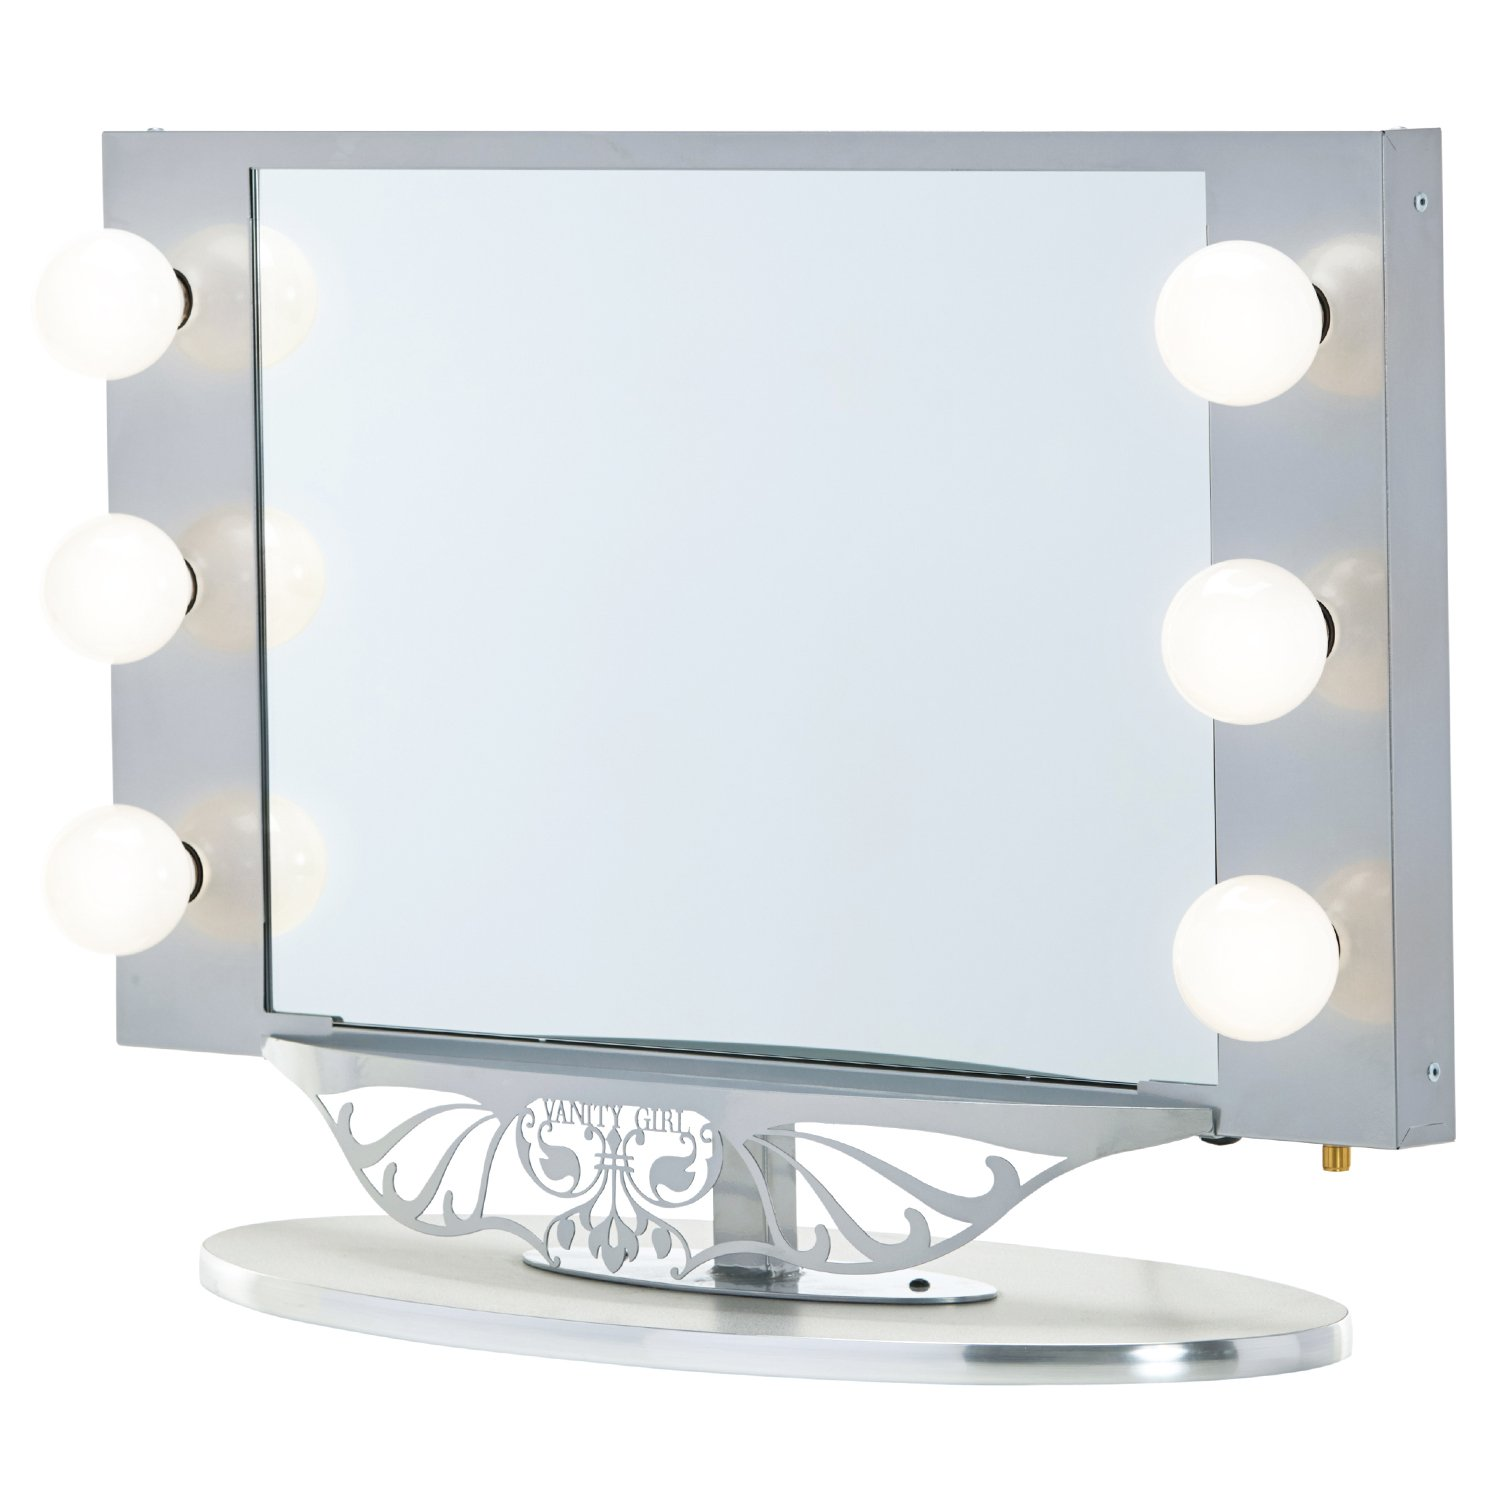 Silver Vanity Girl Starlet Lighted Vanity Mirror with Optic Glass and 6 Cosmetic Light Bulbs Around Frame